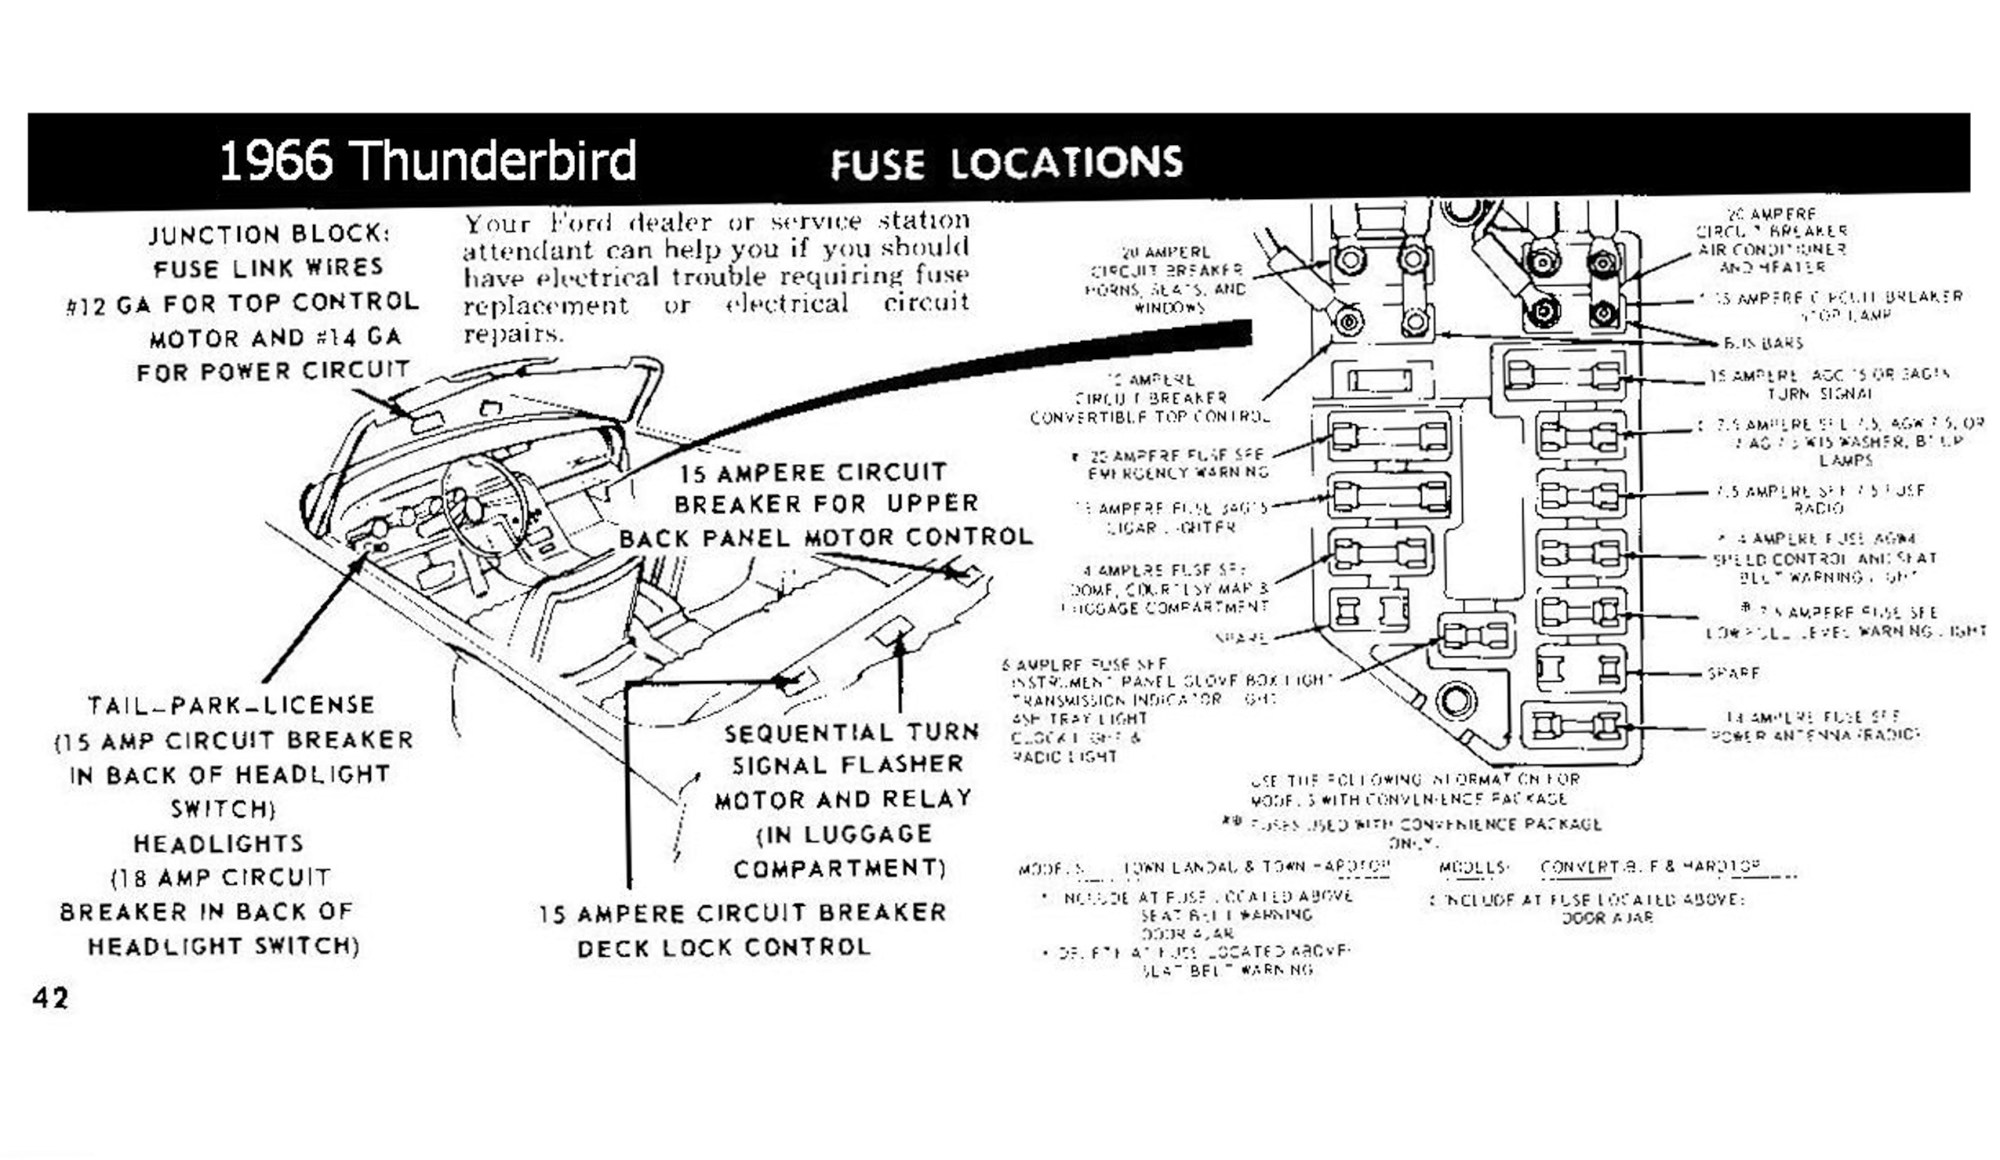 hight resolution of 1964 ford thunderbird fuse box diagram simple wiring schema 1995 ford thunderbird fuse box 1964 thunderbird